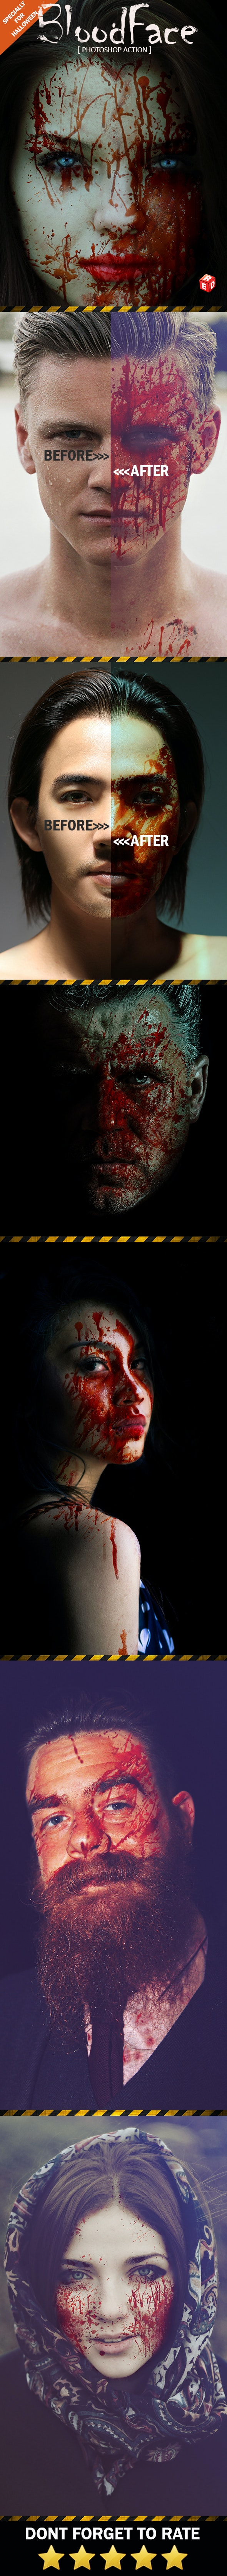 Blood Face Photoshop Action - Photo Effects Actions